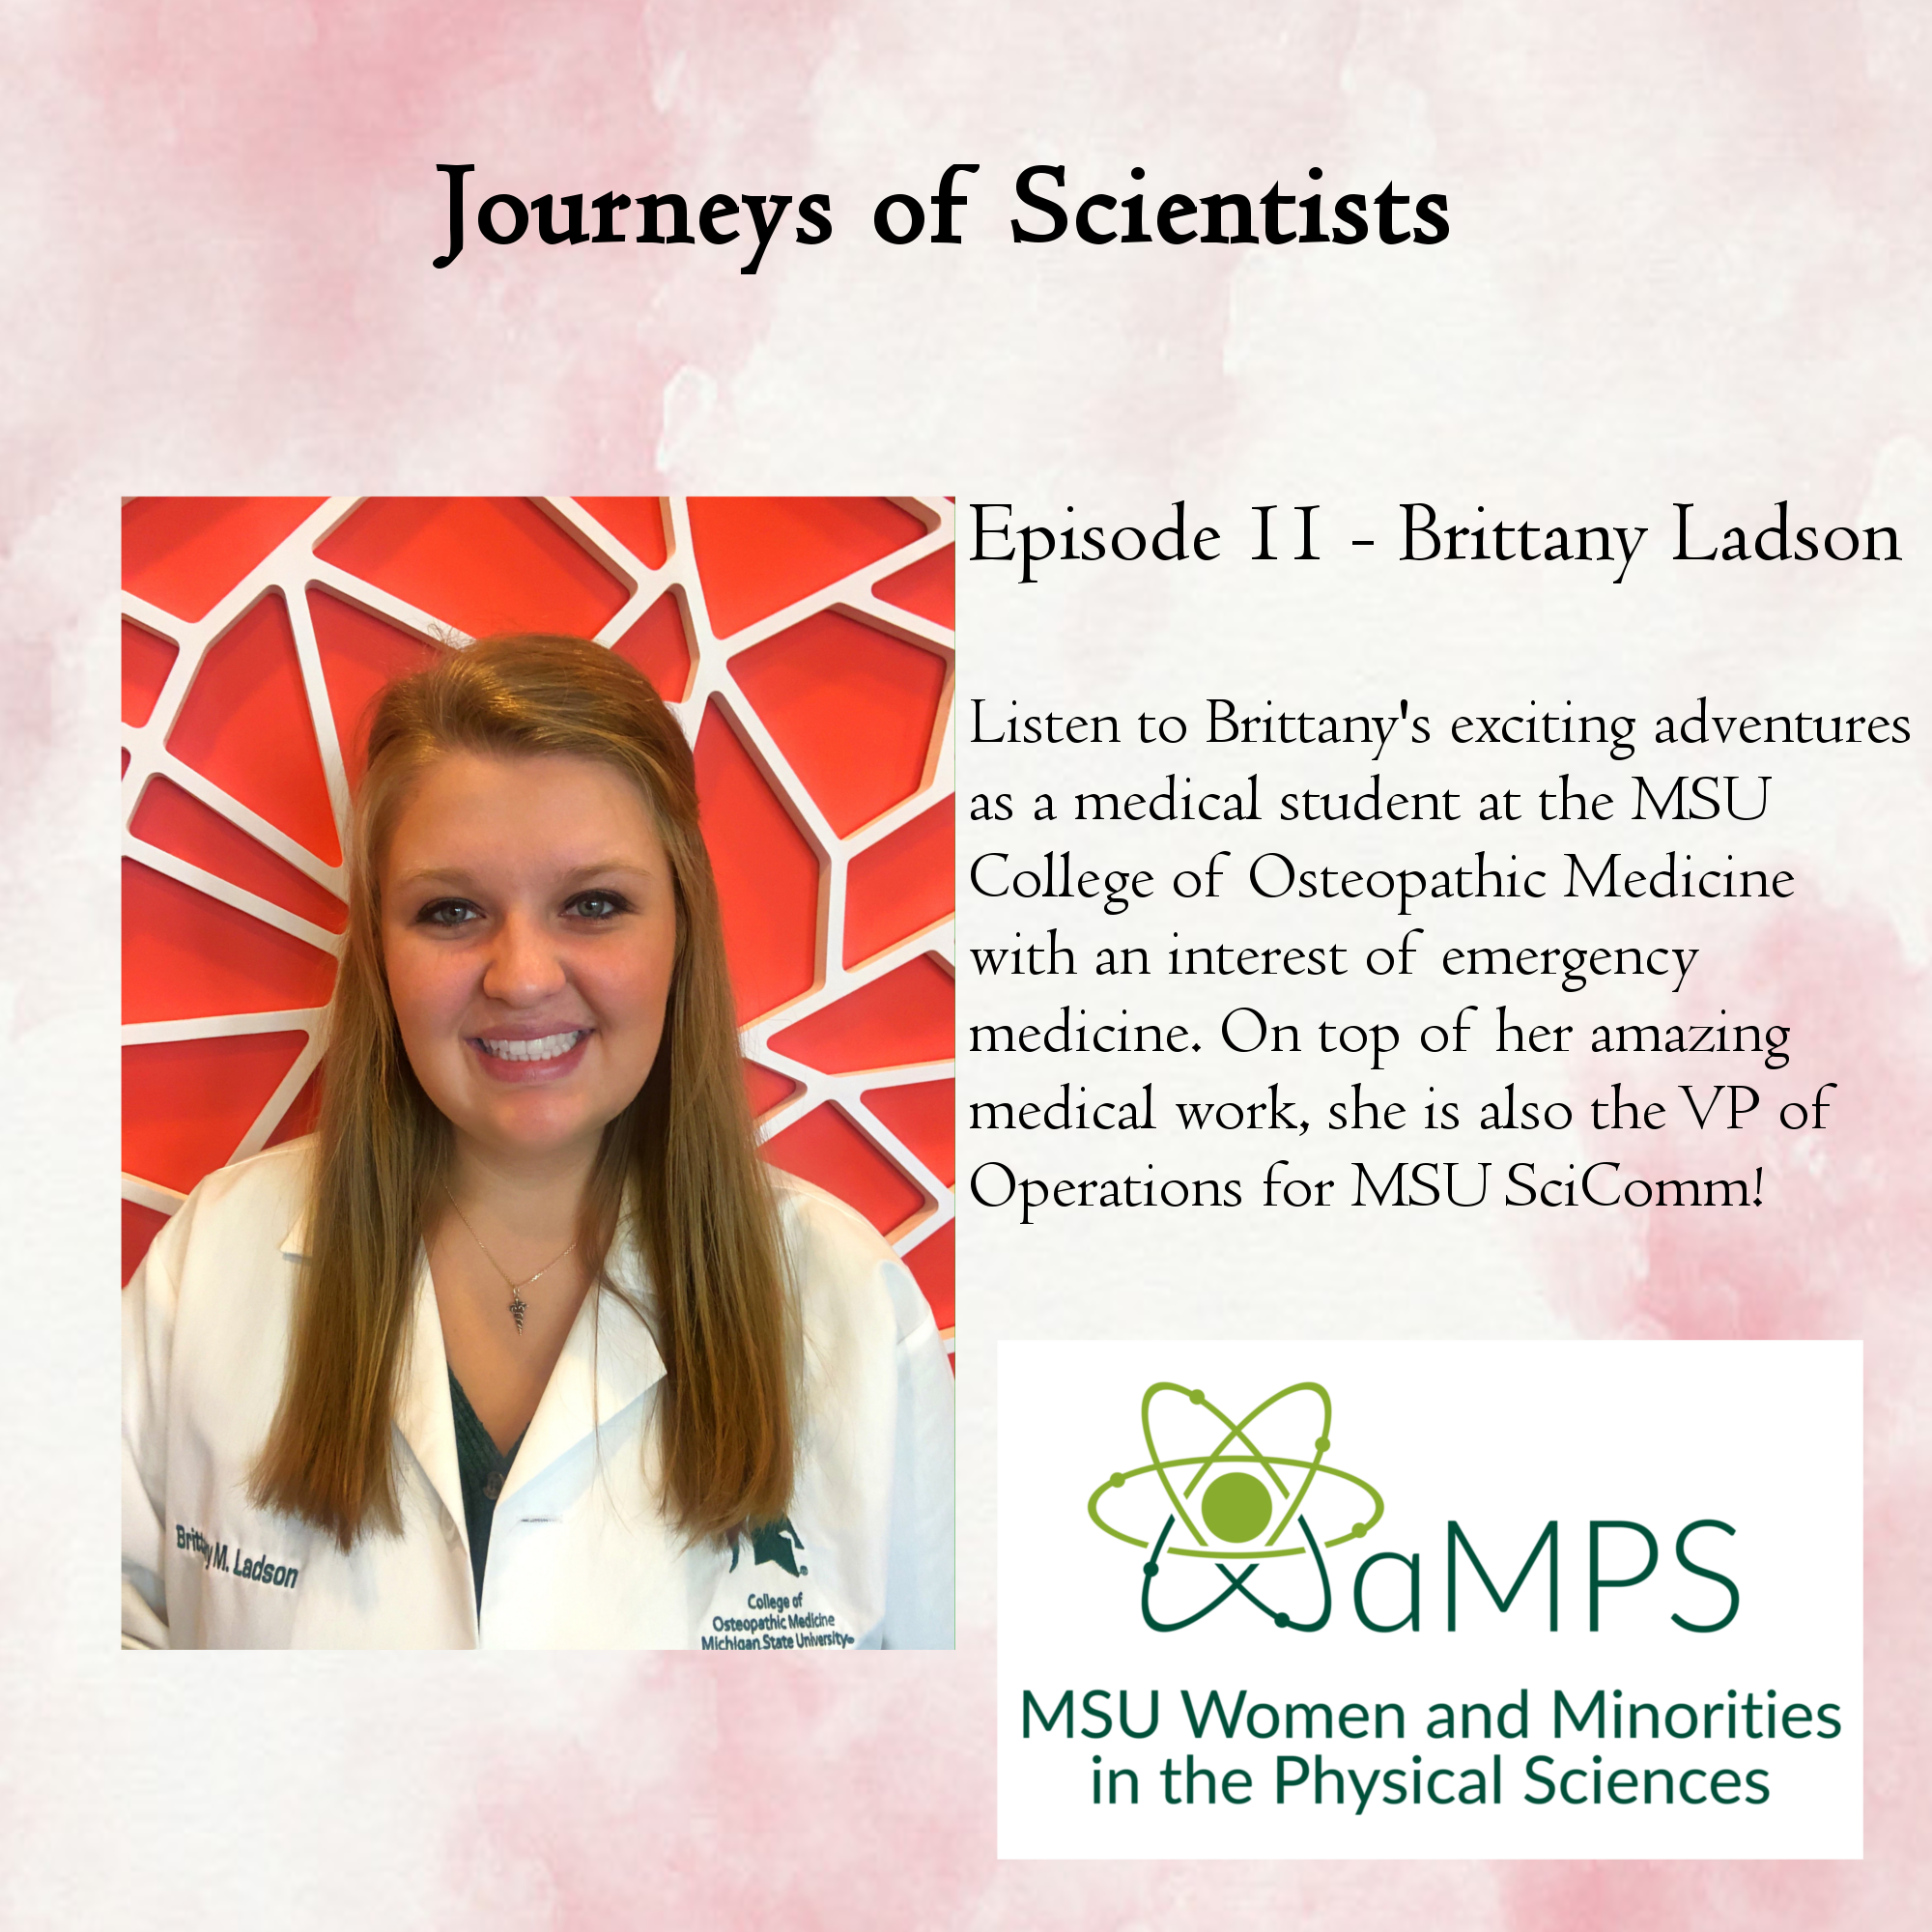 Brittany Ladson is a 3rd year medical student at Michigan State University College of Osteopathic Medicine. She is currently rotating at Sparrow Hospital and is hoping to pursue a residency in emergency medicine and work for Doctors Without Borders. Her ultimate goal is to work in a resource-limited and Spanish speaking region and serve those in need. She is also the VP of Operations for MSUSciComm, Michigan State University's Science Communication Organization. You can learn more about MSU SciComm at https://www.msuscicomm.org/